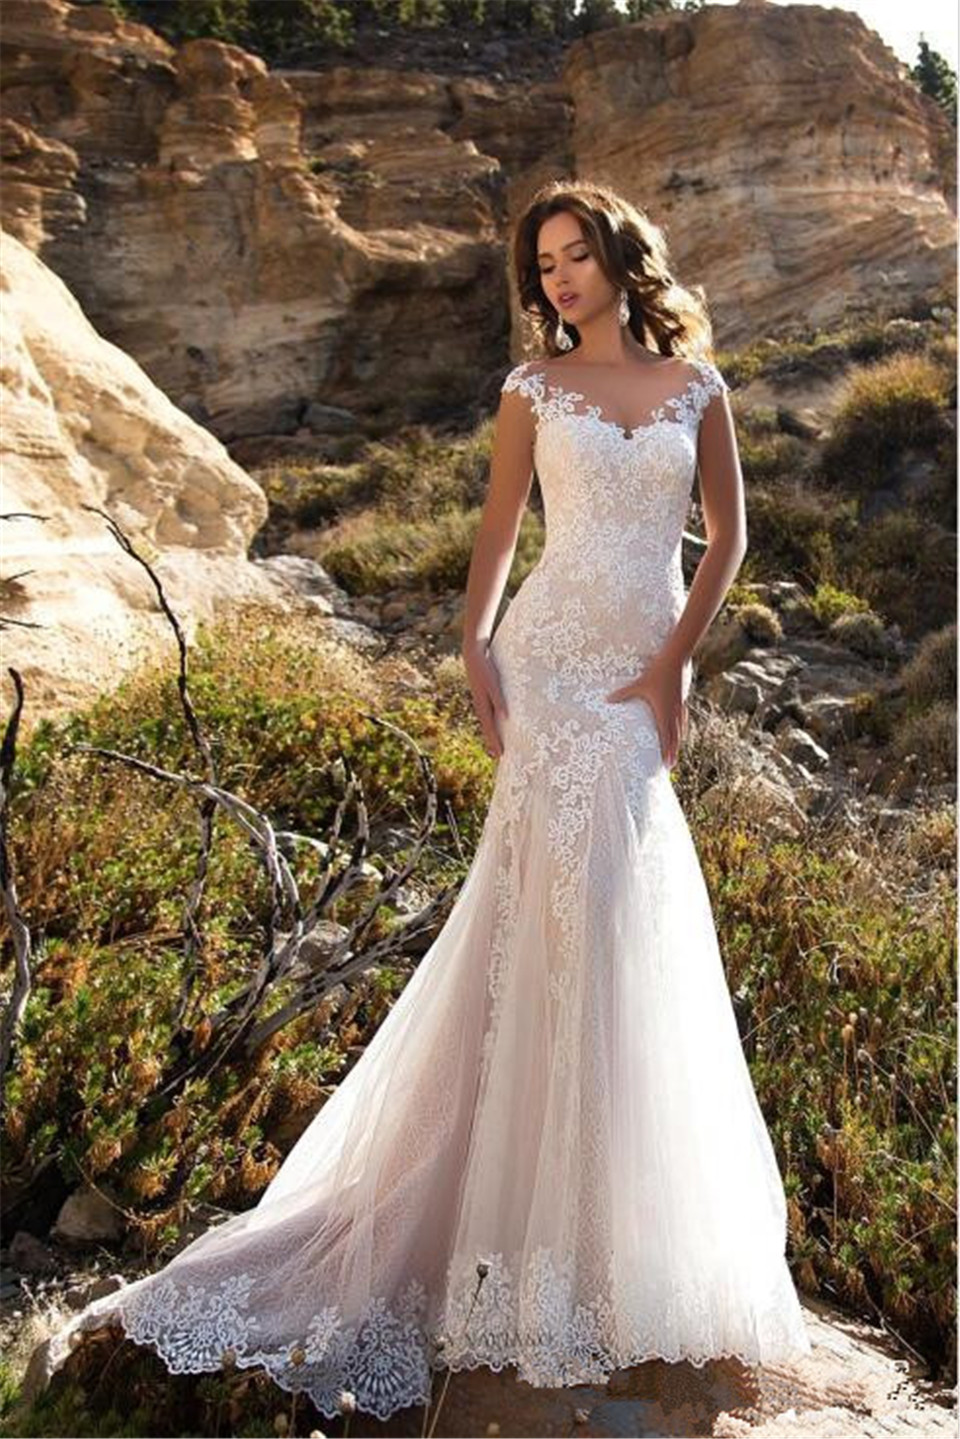 sheer-neck-appliqued-lace-wedding-dresses-2018-mermaid-court-train-boho-bridal-gowns-vestidos-de-noiva-ba8413 (1)_